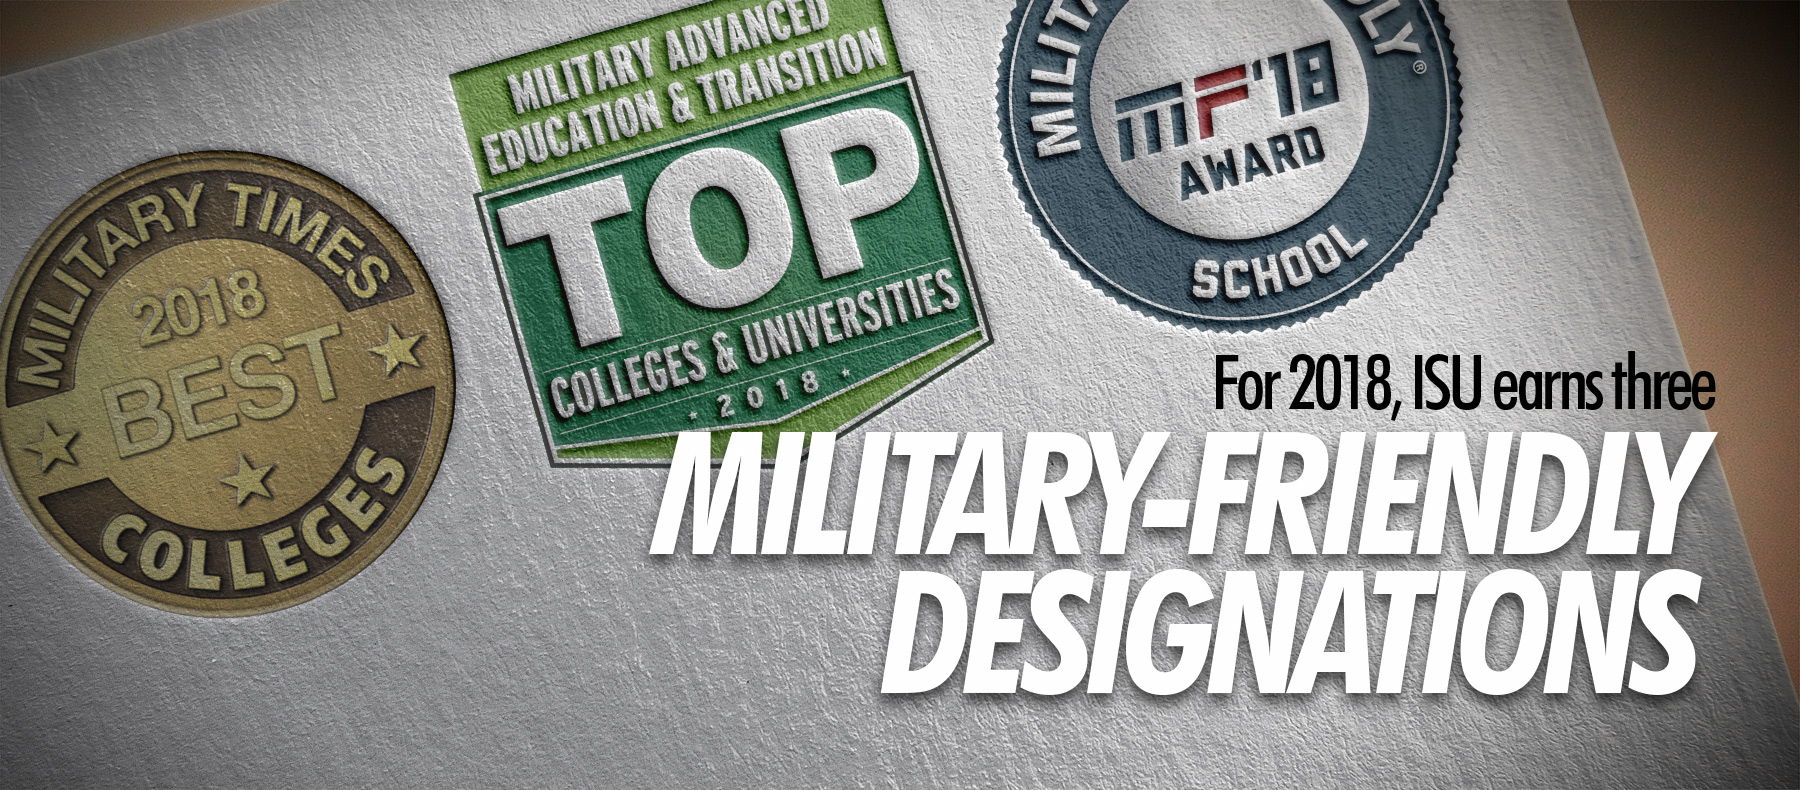 2018 Military Friendly Awards to ISU, content linked